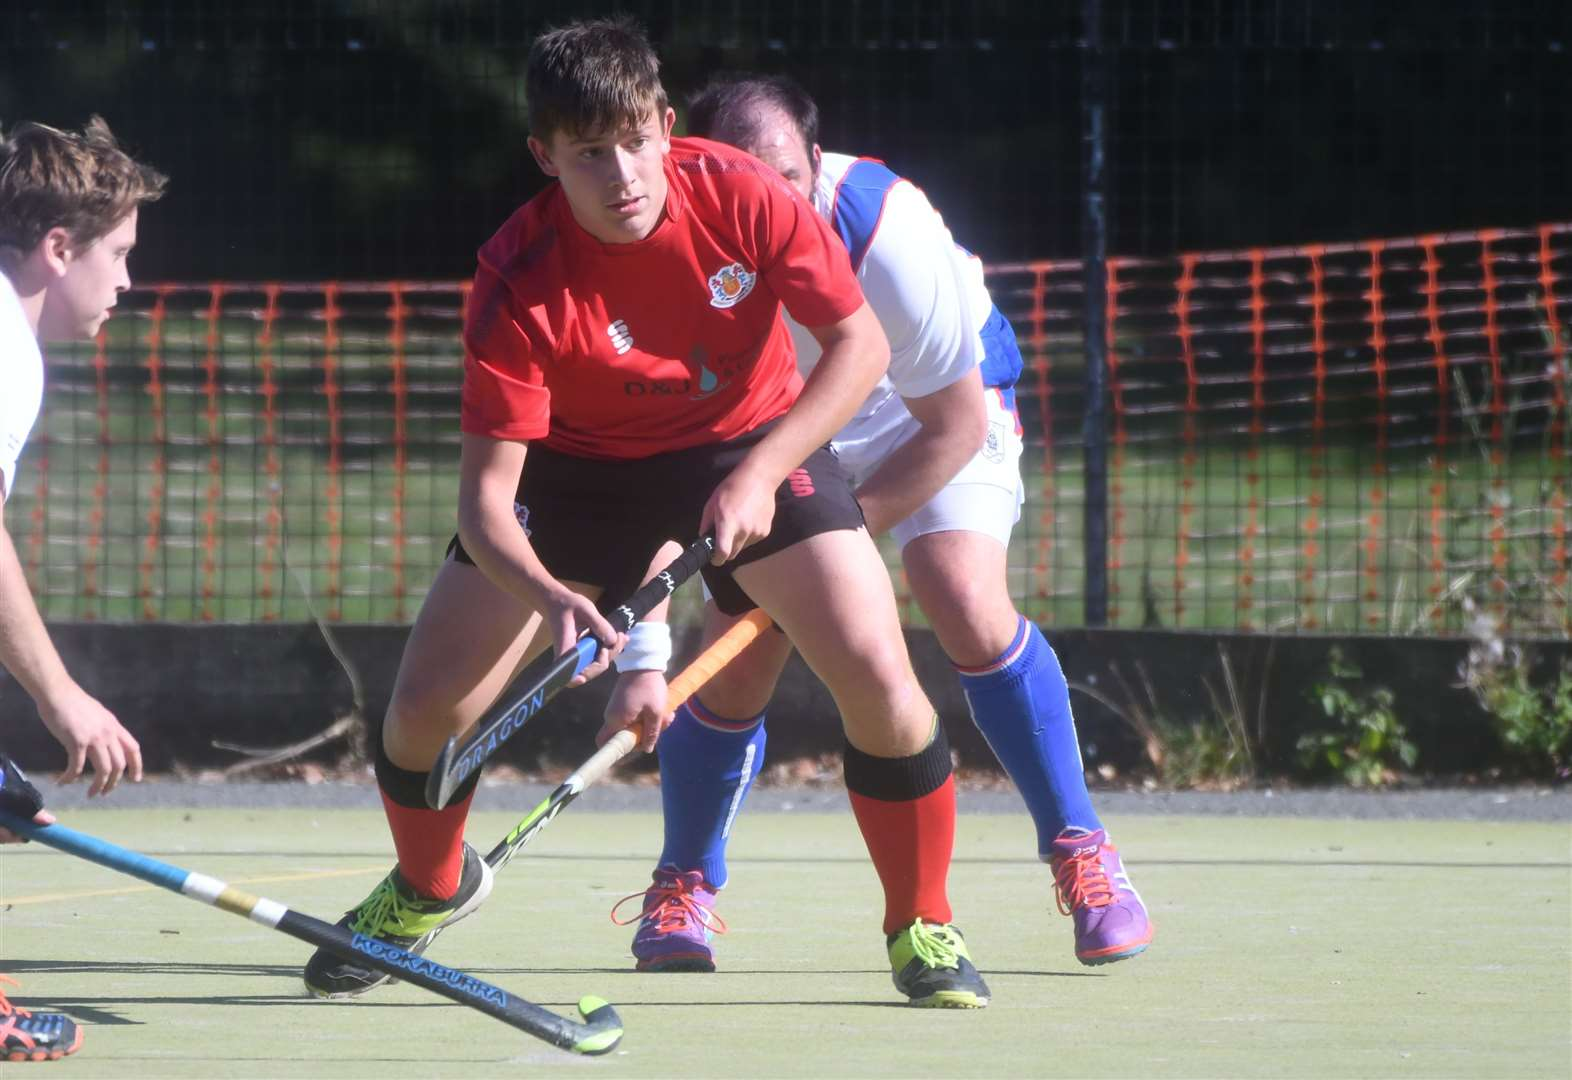 Hockey: Men's II beat both big freeze and St Ives 3rds